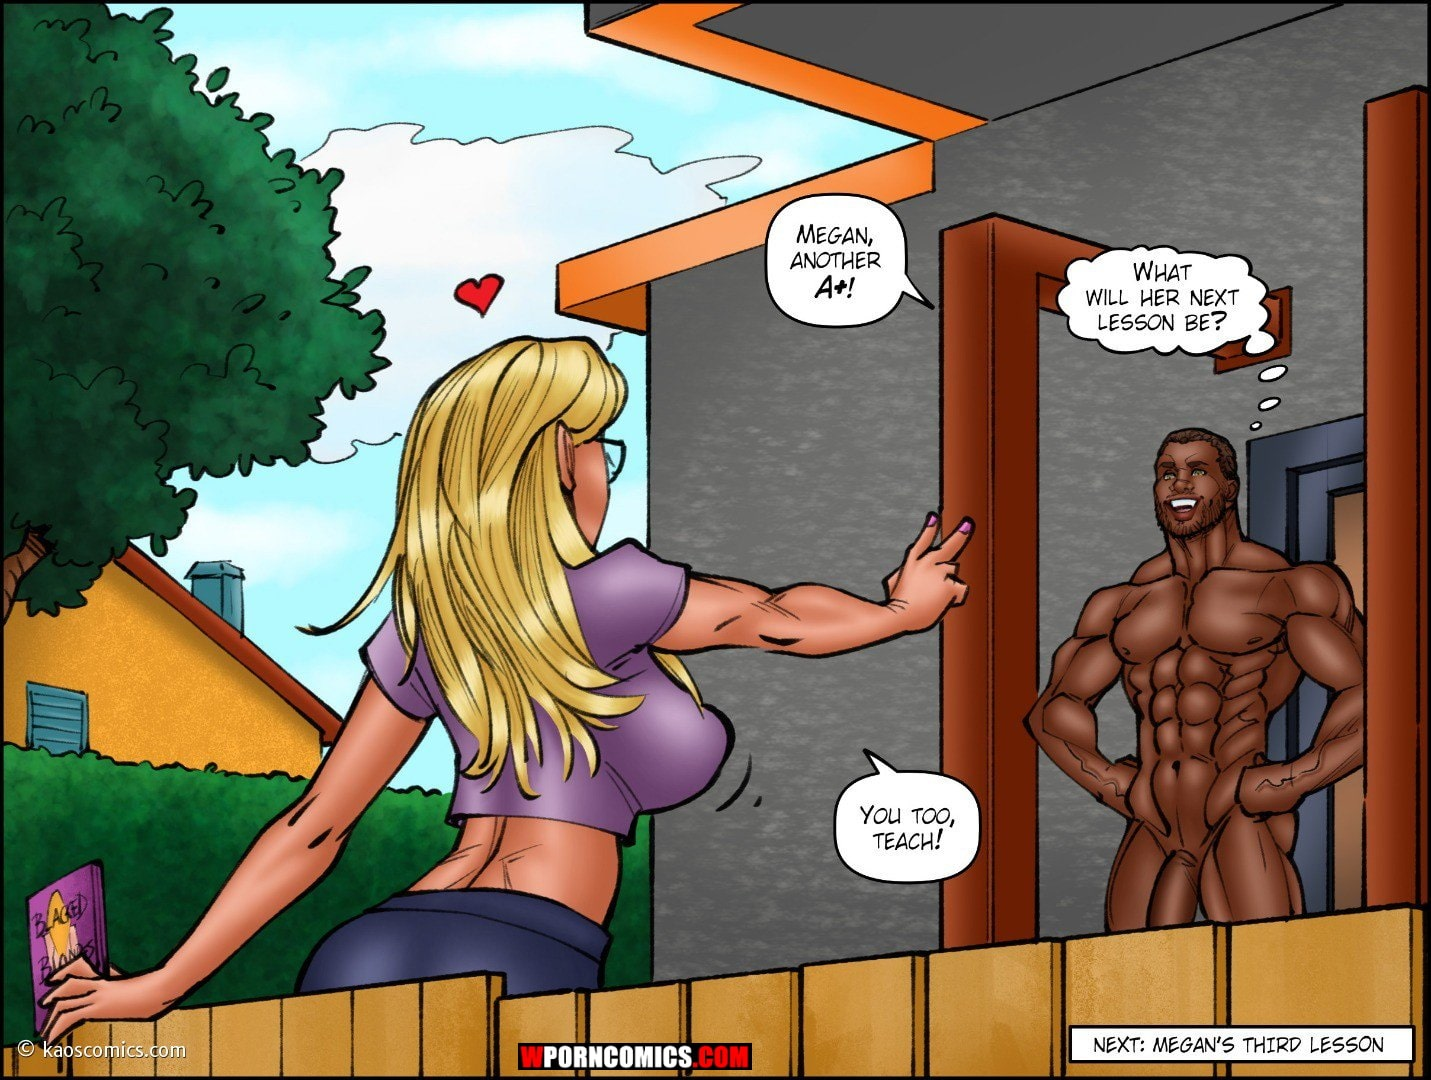 porn-comic-lessons-from-the-neighbor-second-lesson-2020-02-26/porn-comic-lessons-from-the-neighbor-second-lesson-2020-02-26-41729.jpg